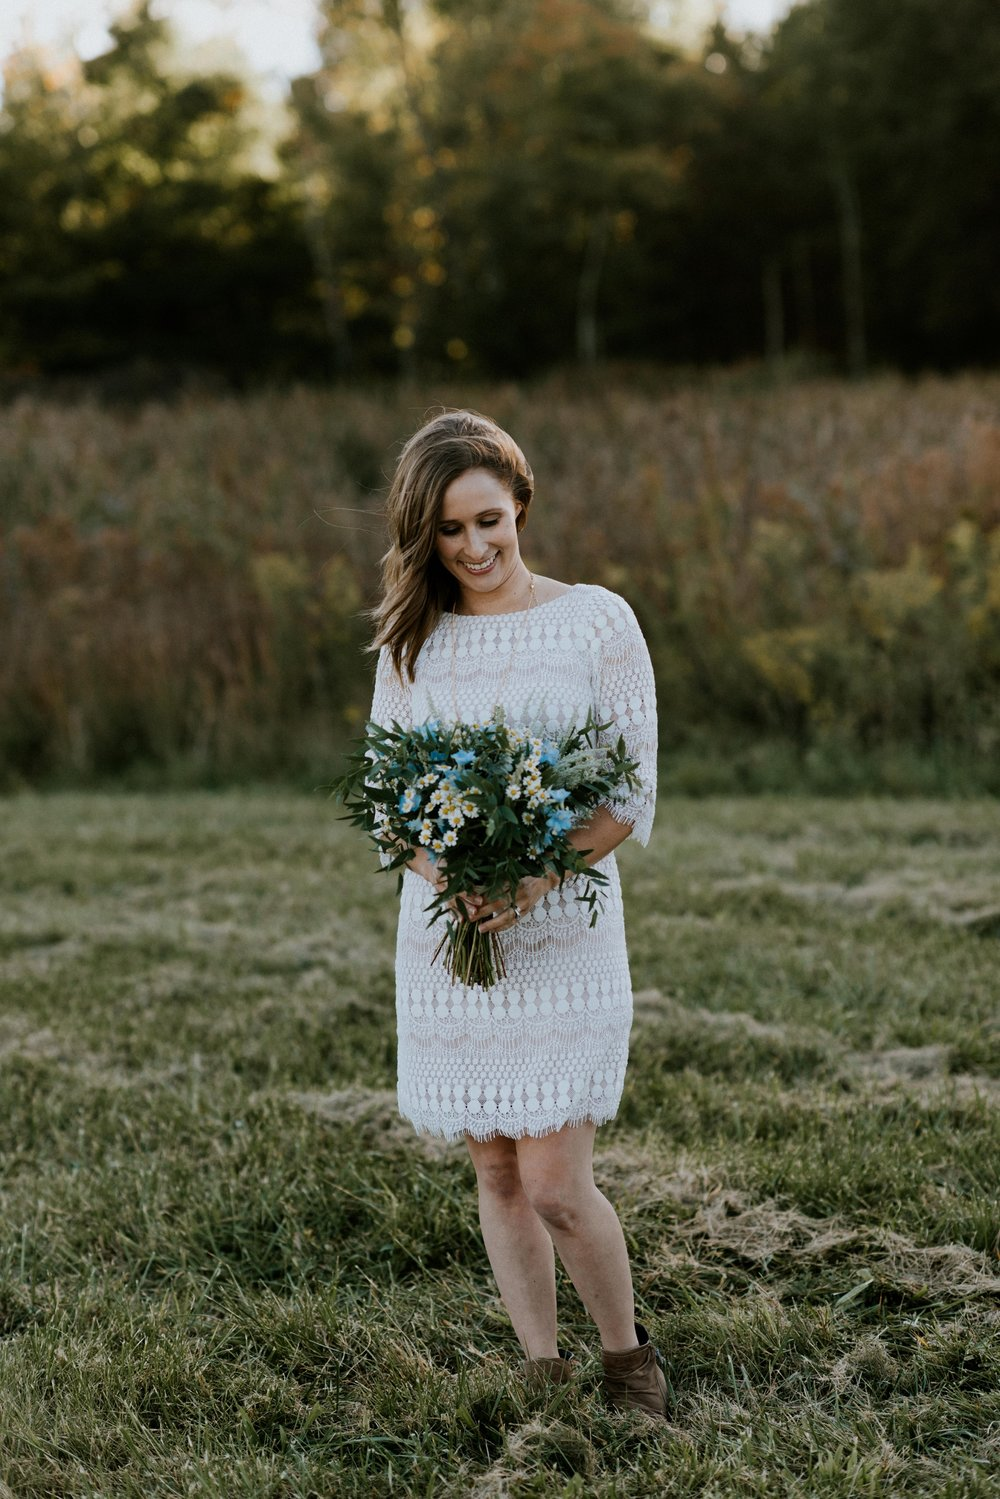 Wildflower-Field-Elopement-Vow-Renewal_Lisa+Chad_MJPHOTO-28.JPG